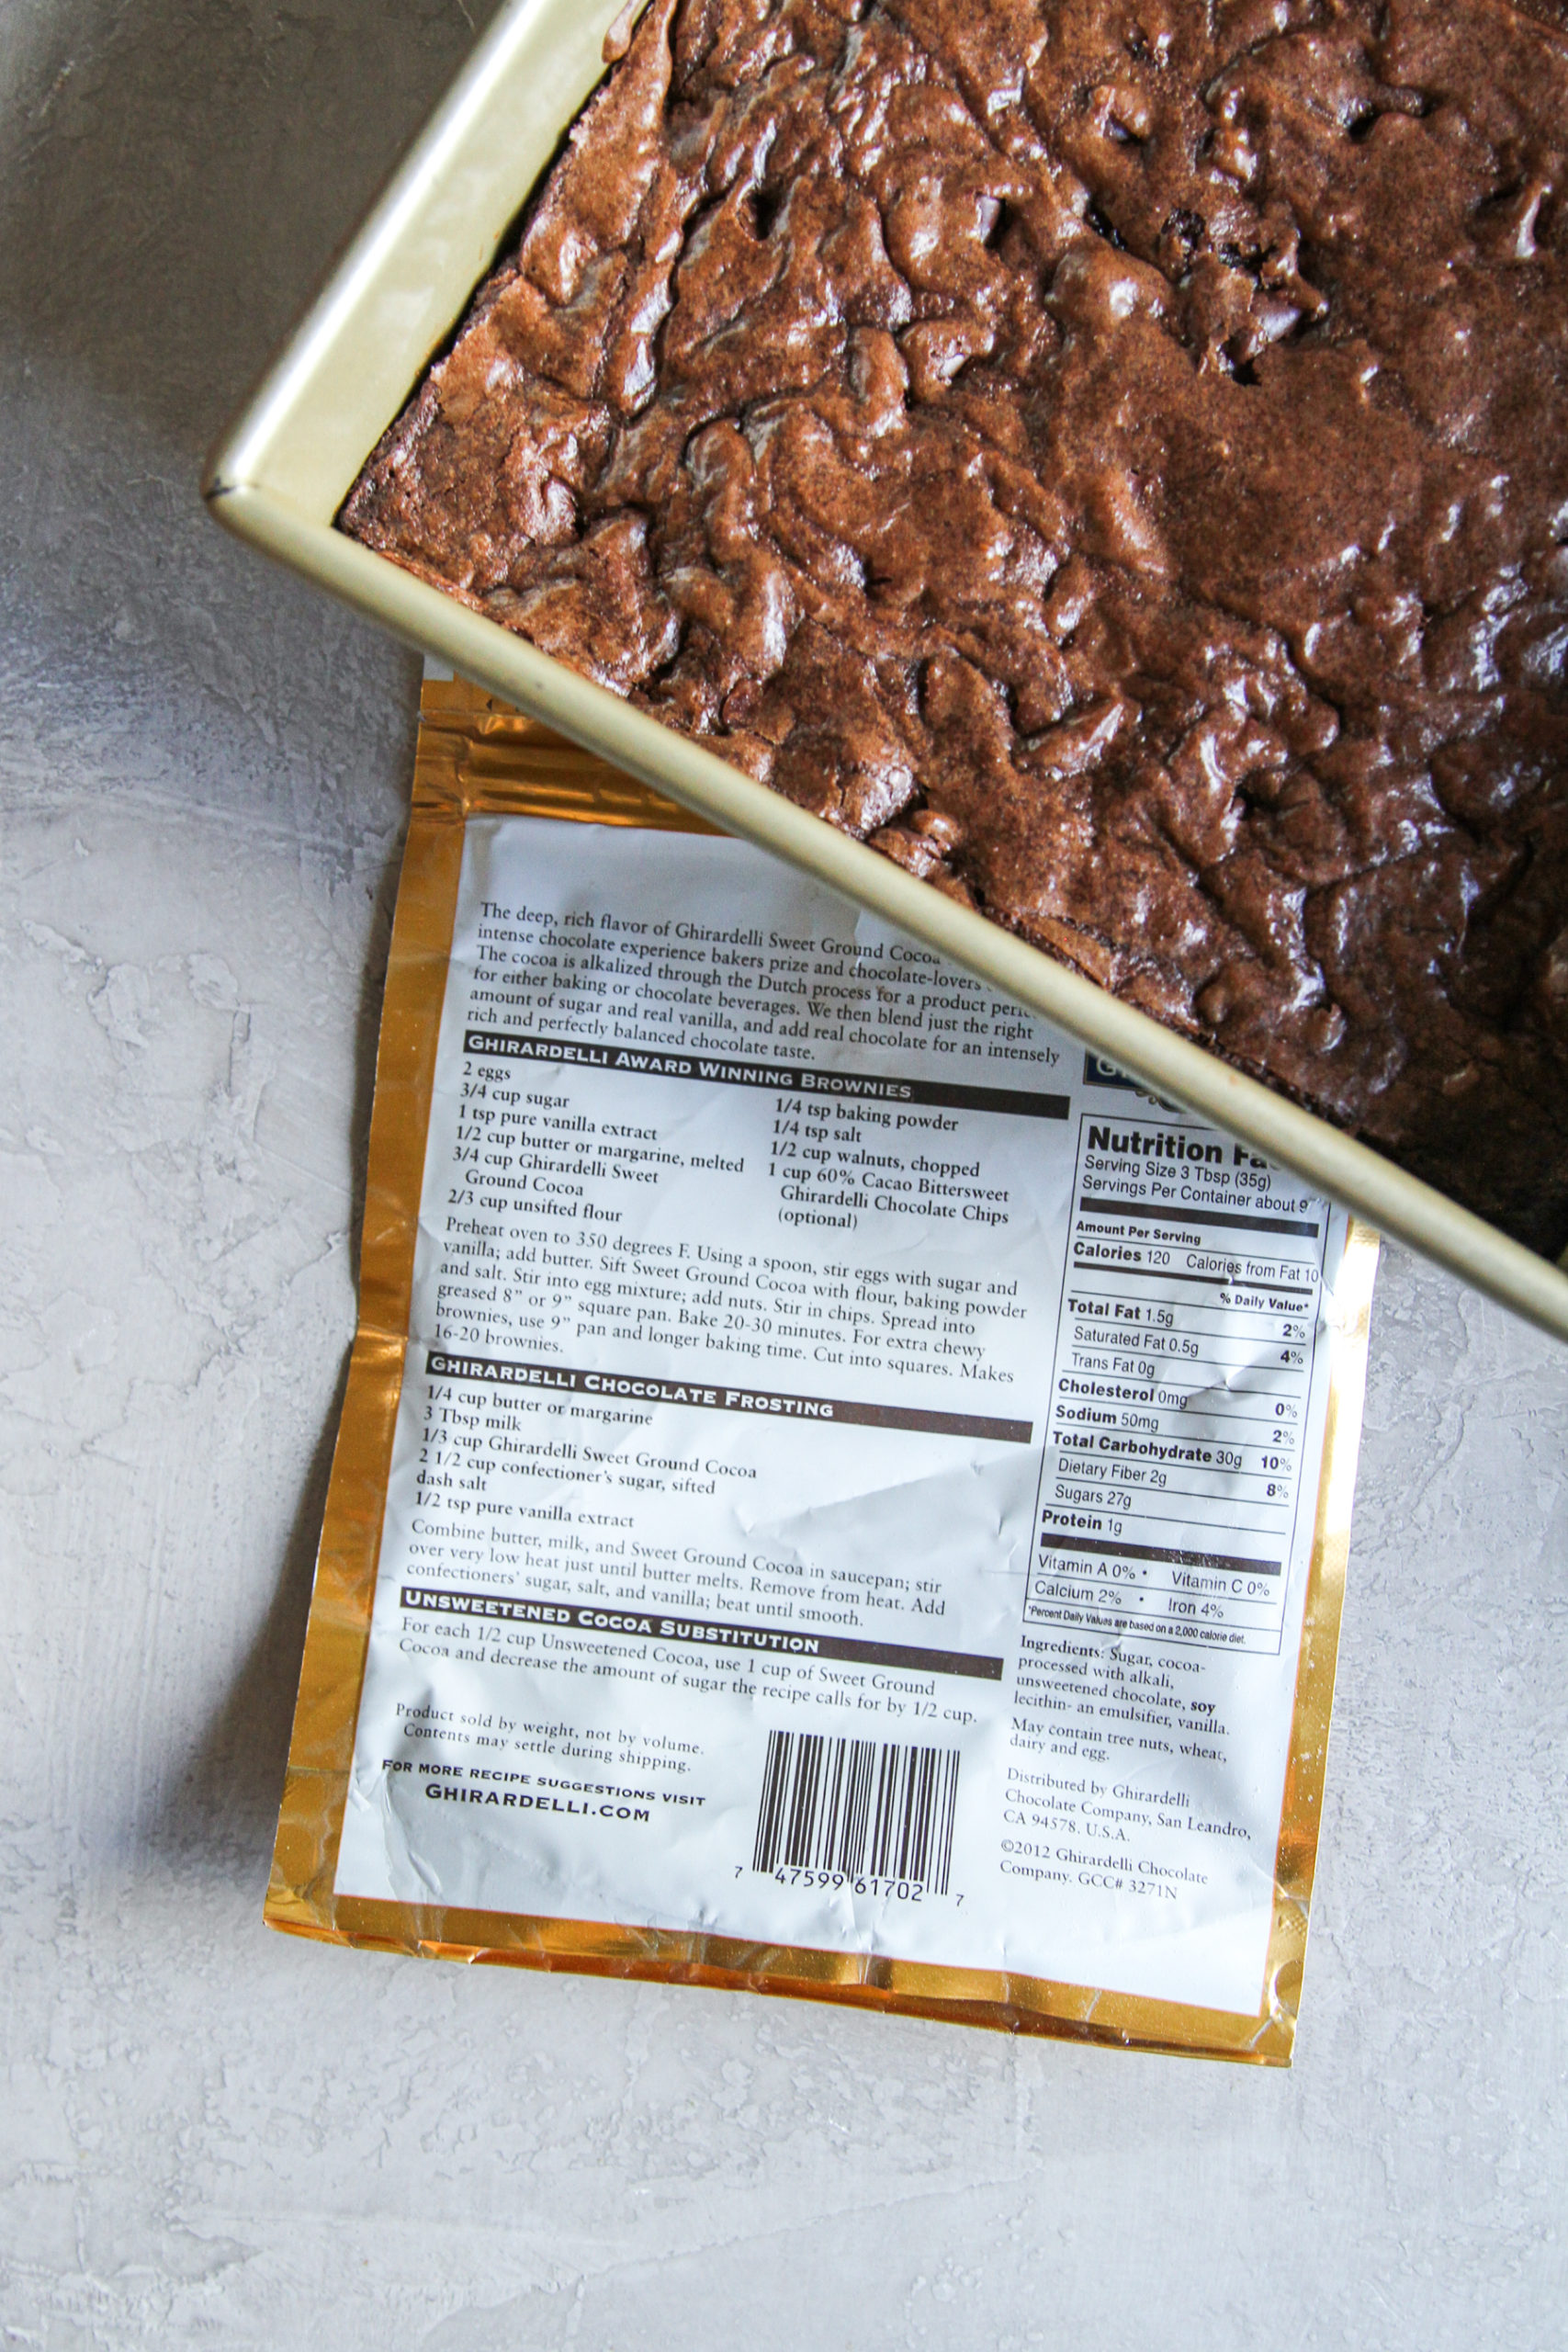 Best ever back of the bag brownies with Ghirardelli chocolate